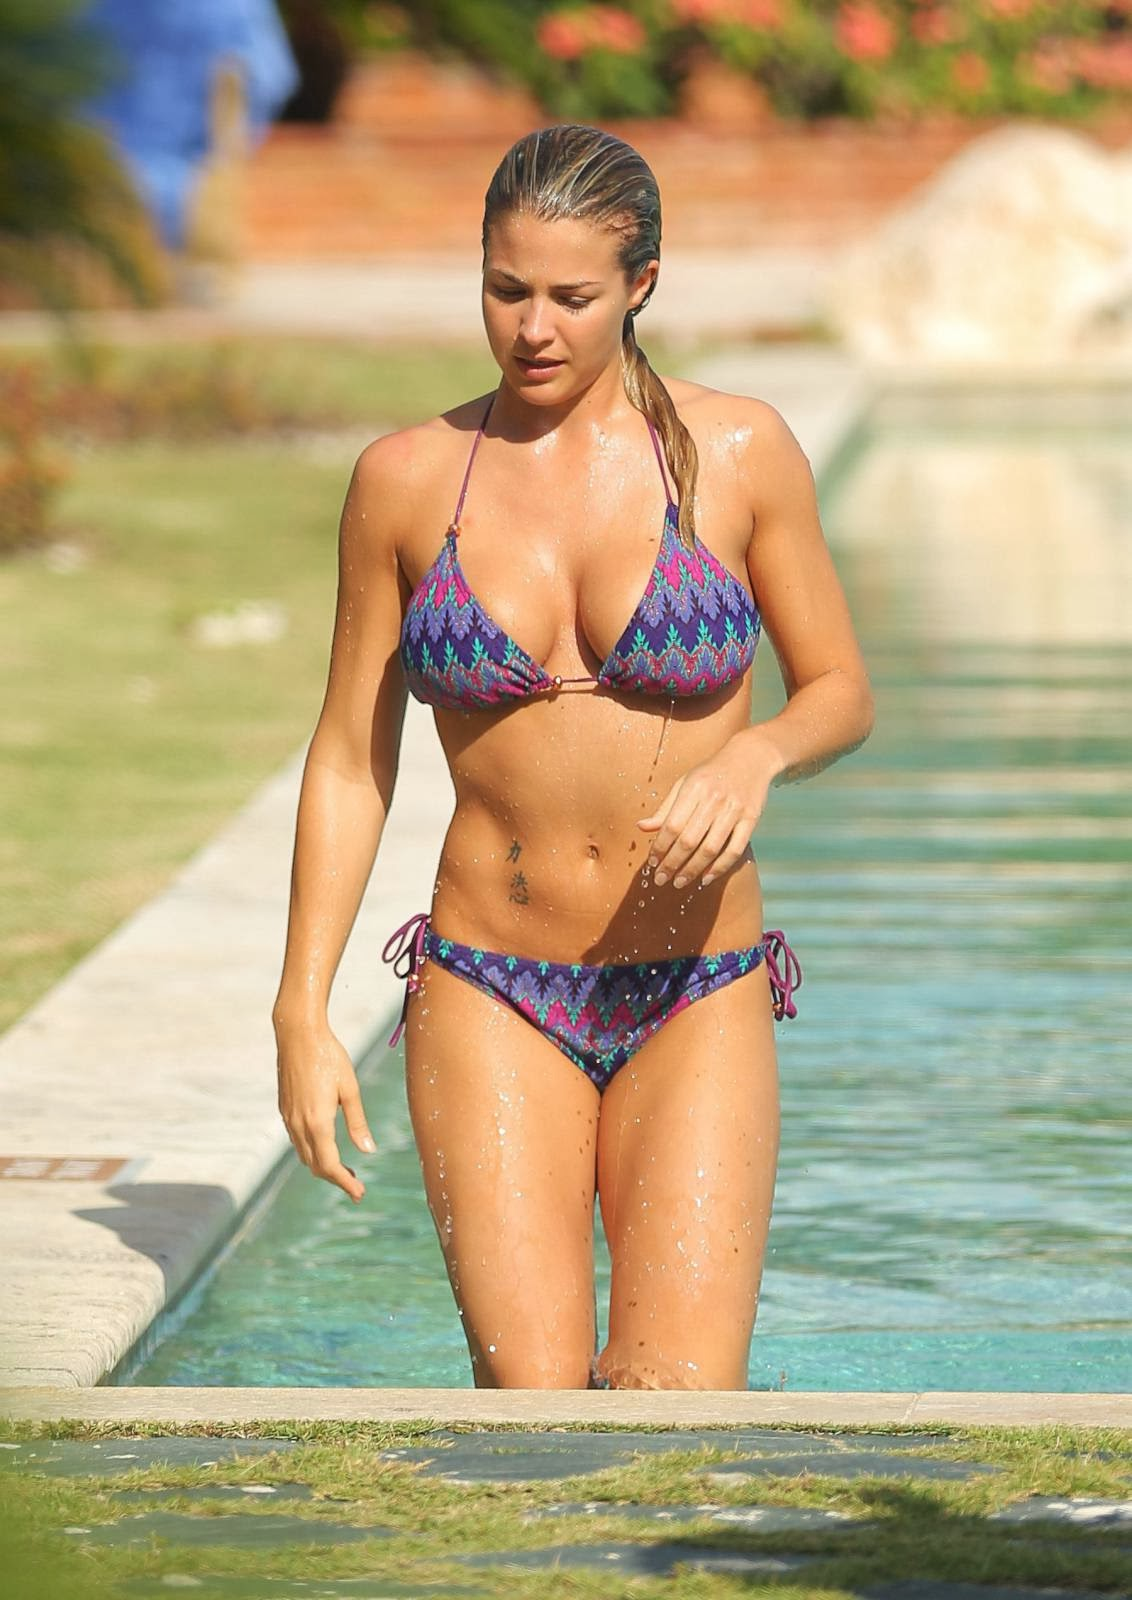 Gemma atkinson bikini commit error